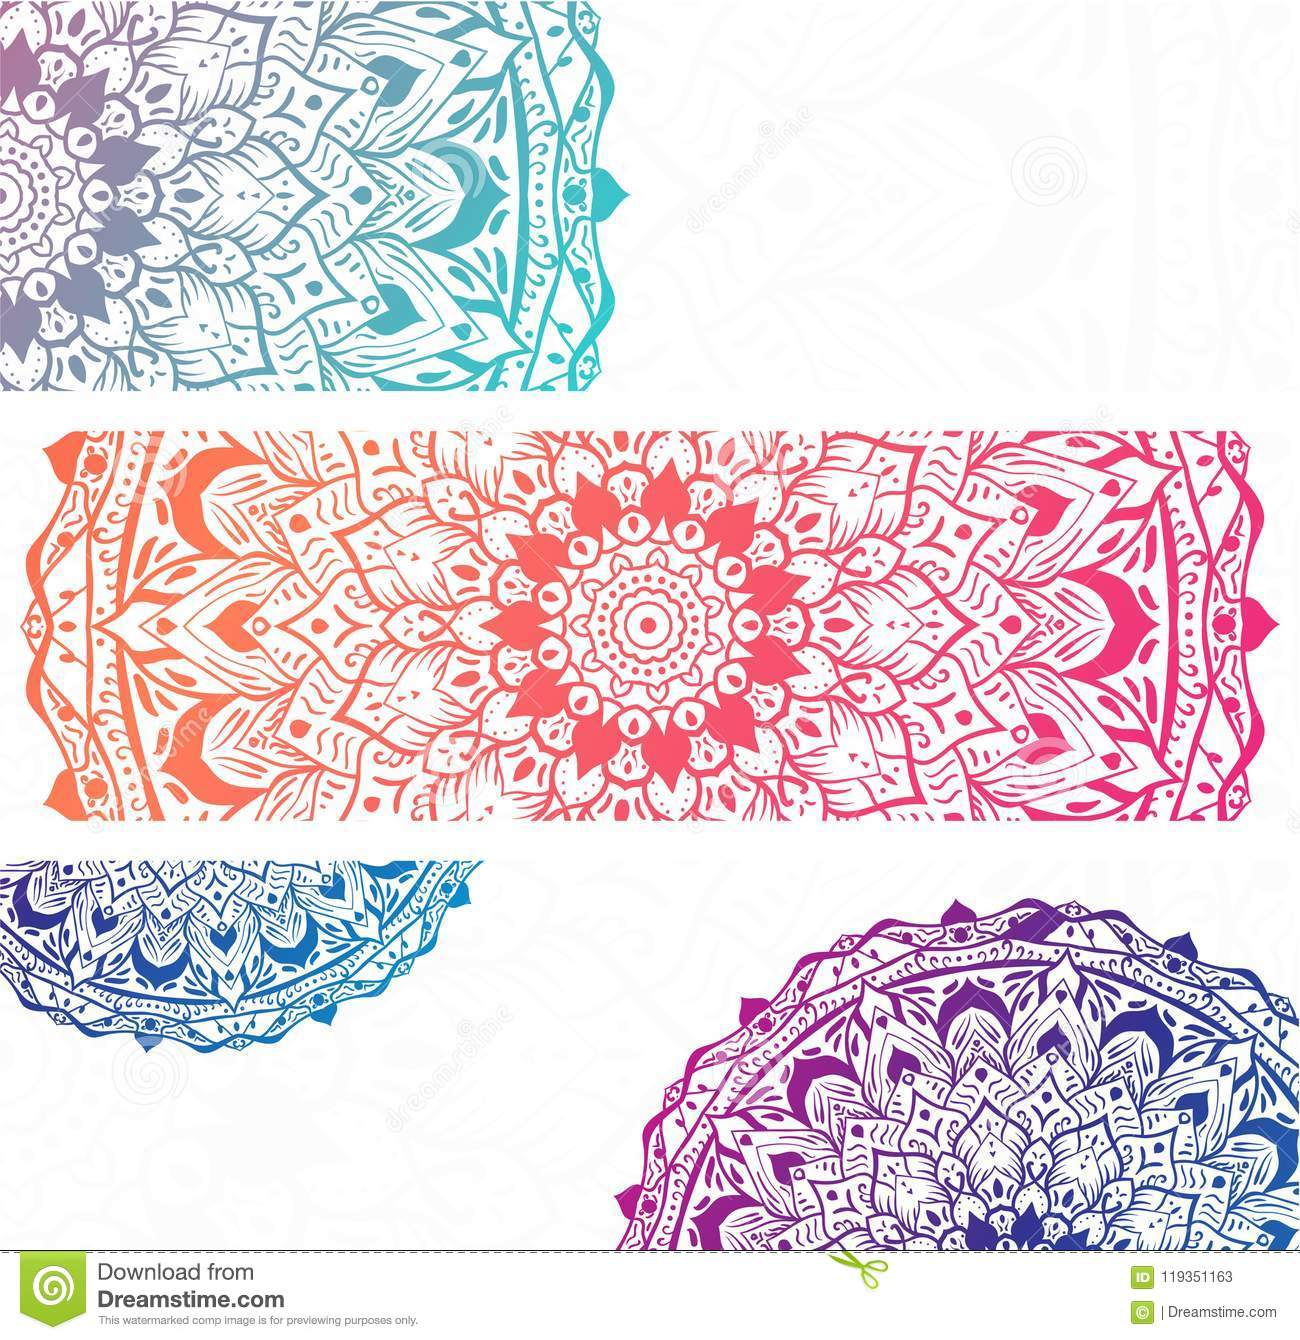 White banners with colorful mandalas.